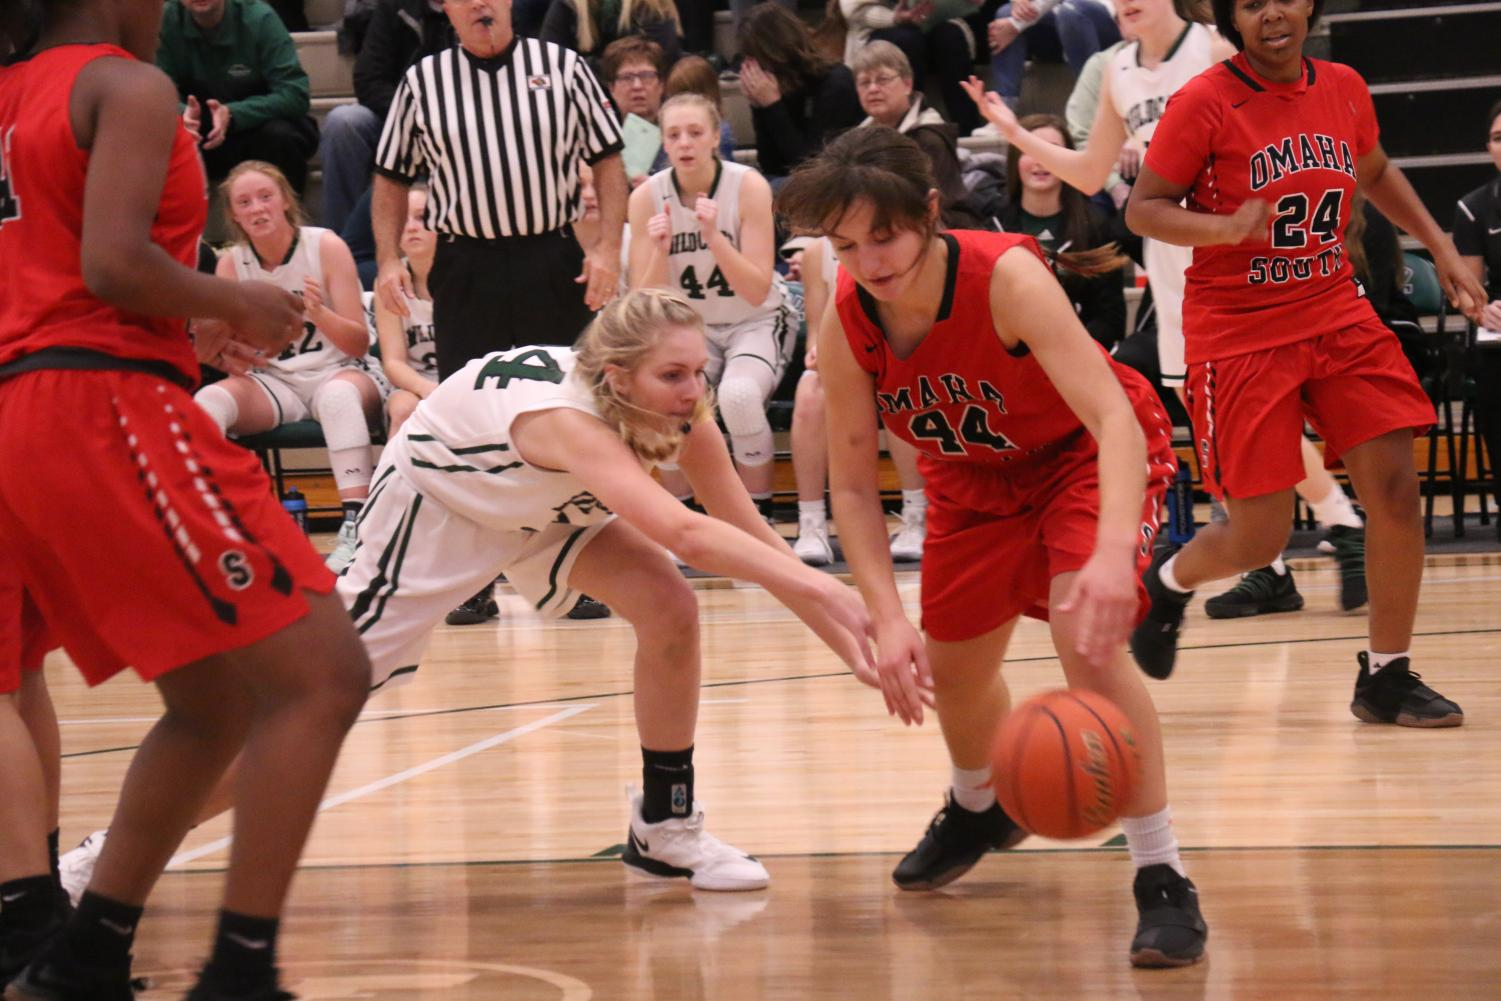 Laney Schipper fights for the basketball.